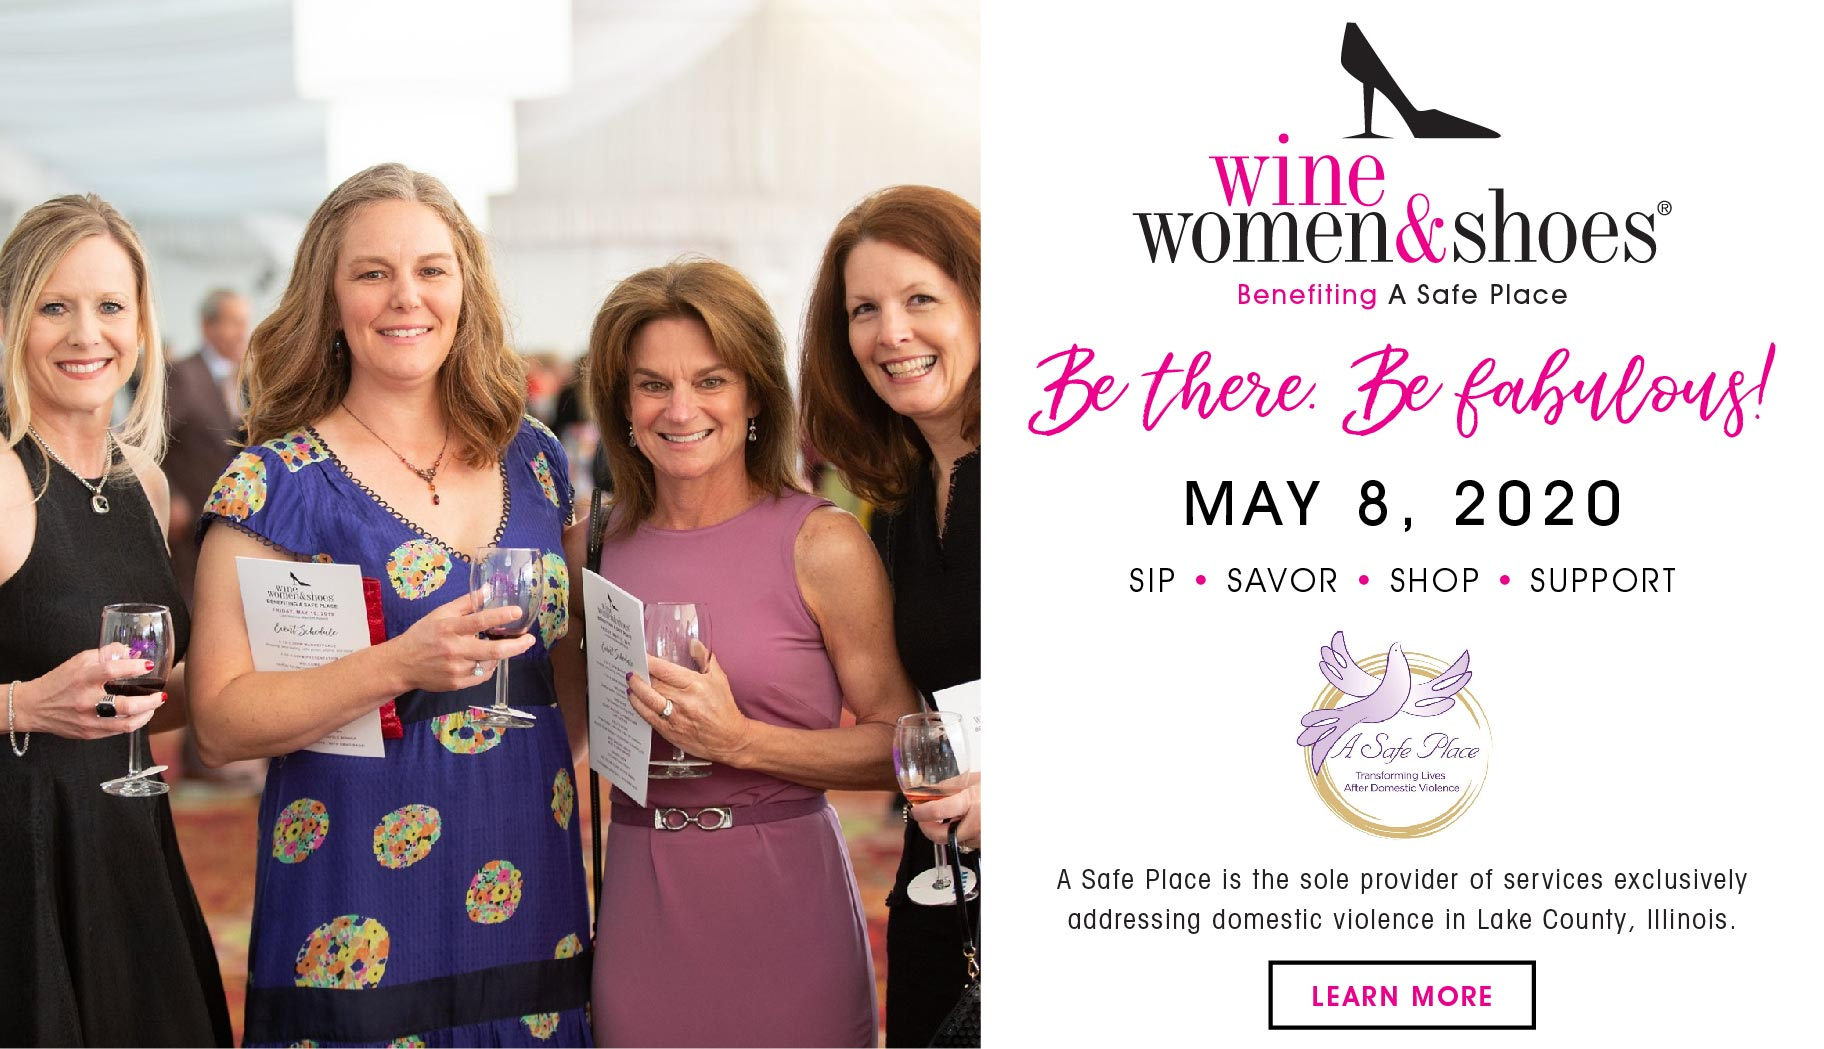 Chicago Events Calendar 2020 Chicago North Shore, IL 2020   Wine Women & Shoes